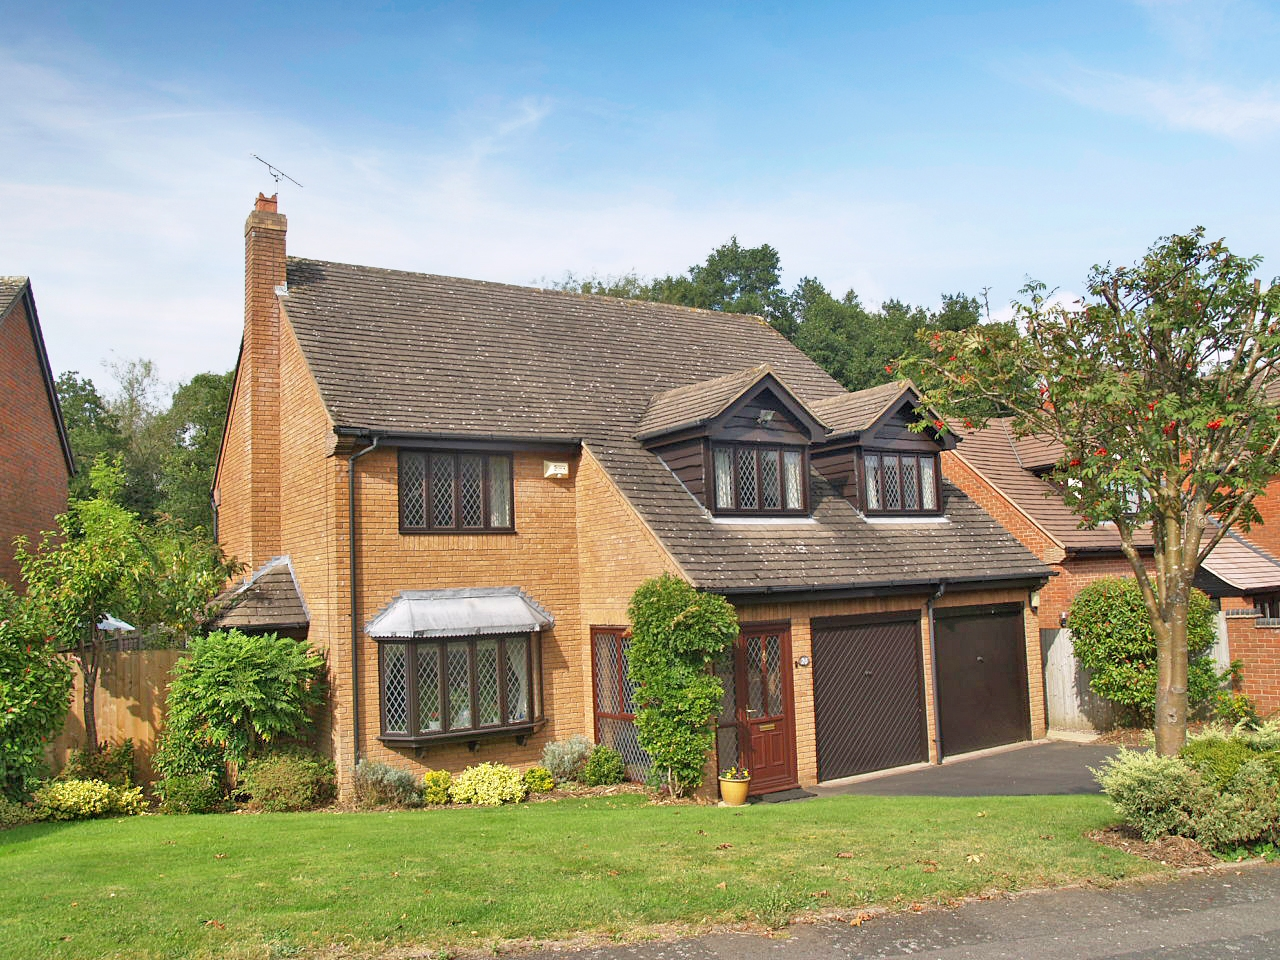 4 bedroom detached house SSTC in Birmingham - Main Image.